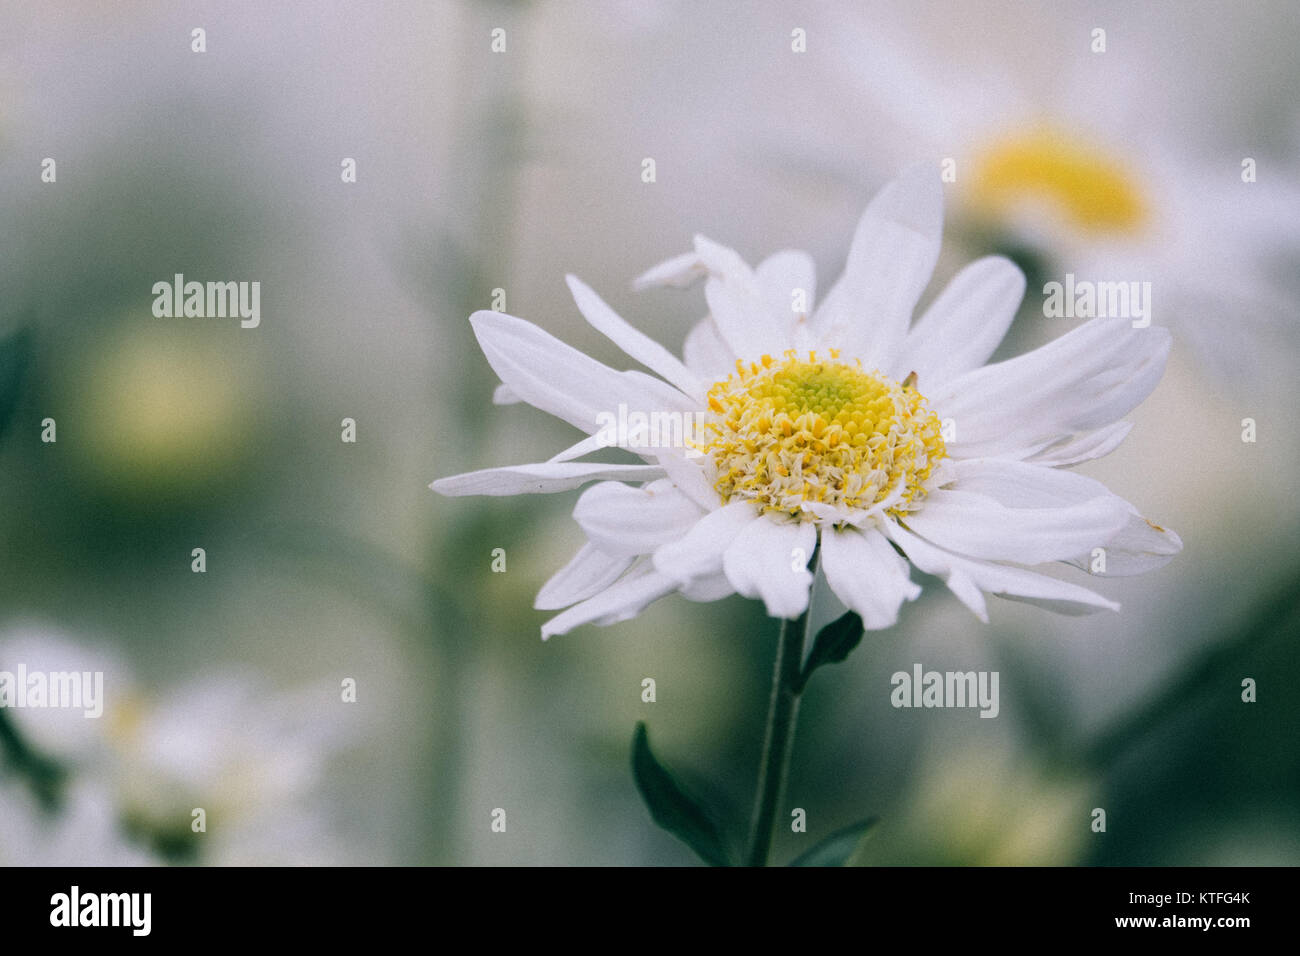 Vintage colour beautiful daisy flowers with the vintage background beautiful daisy flowers with the vintage background izmirmasajfo Choice Image